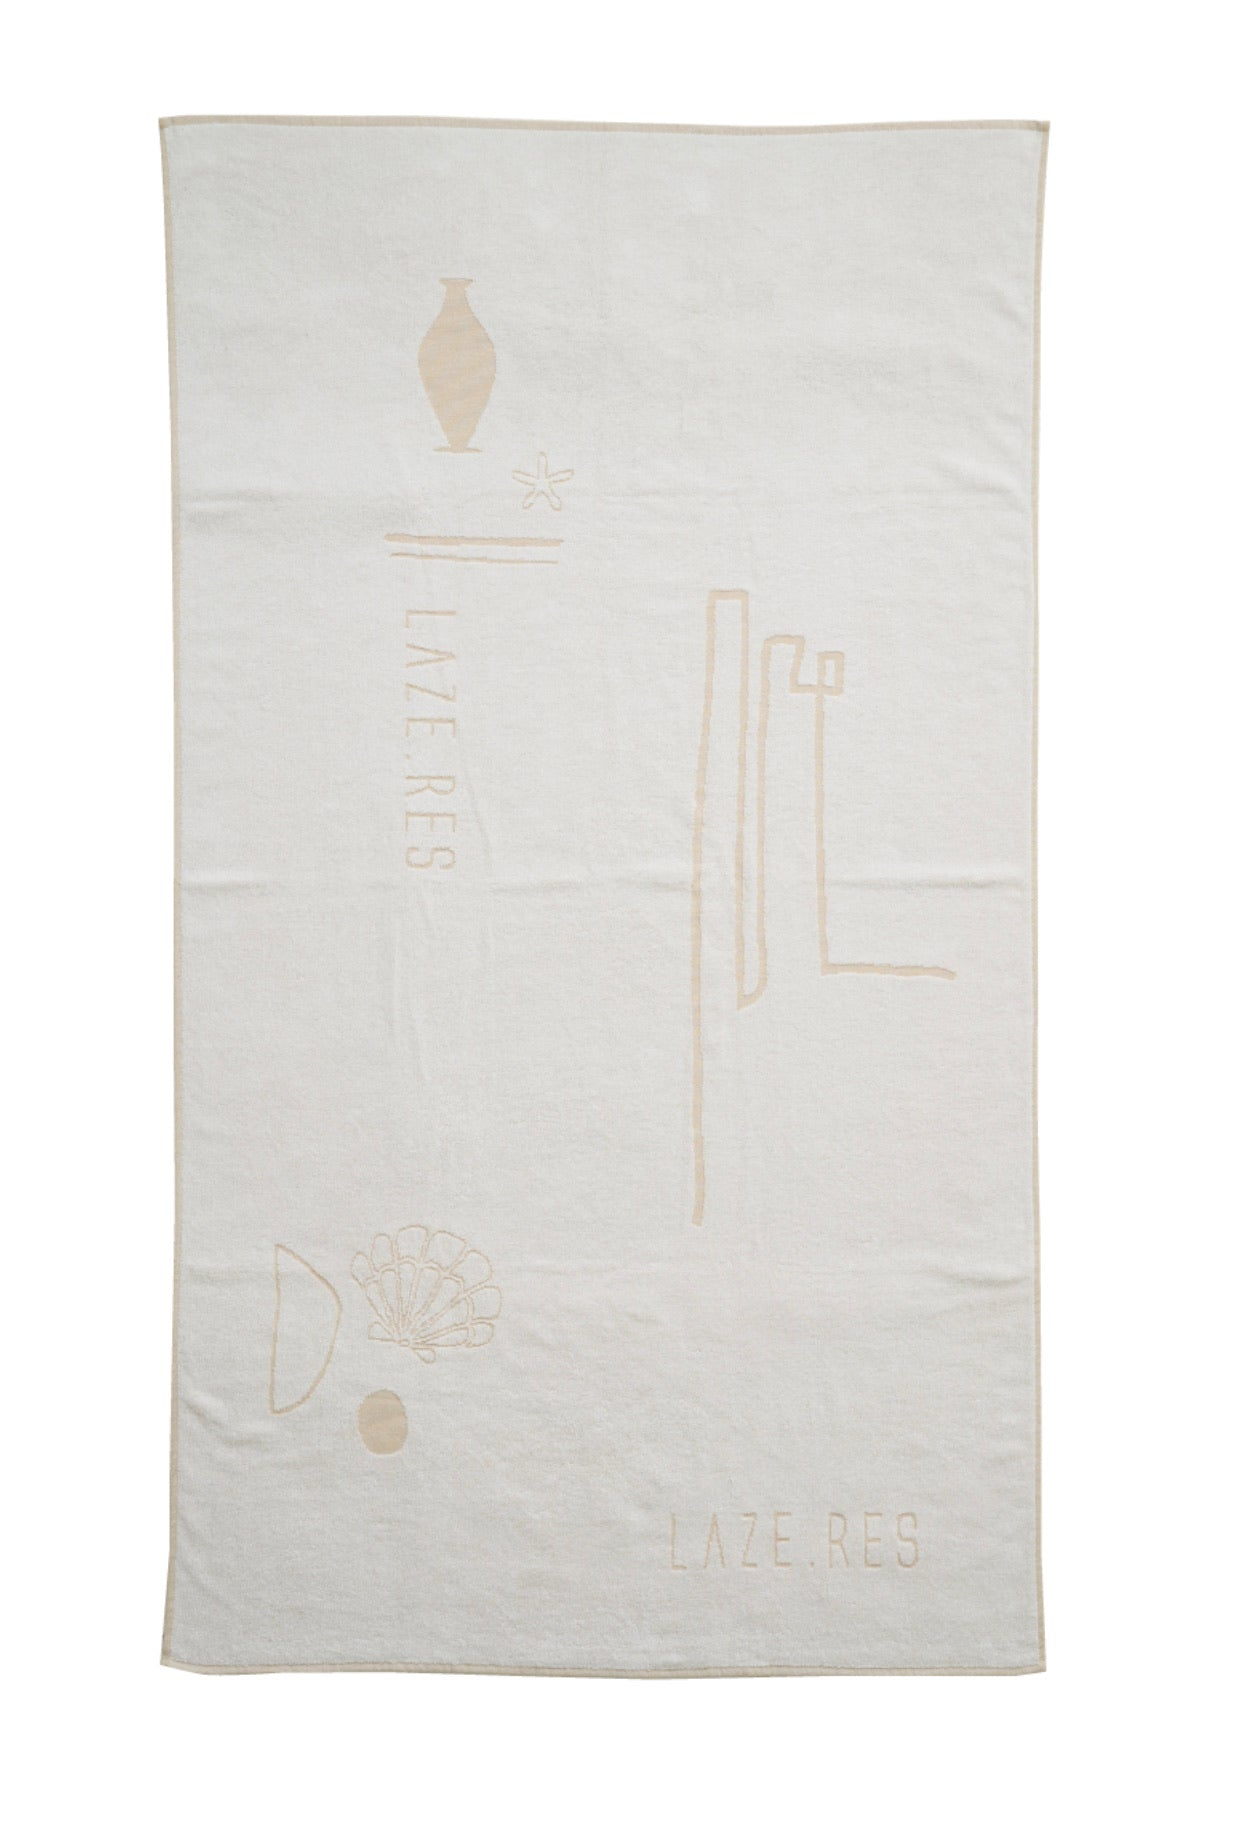 Laze.Res Towel no 1